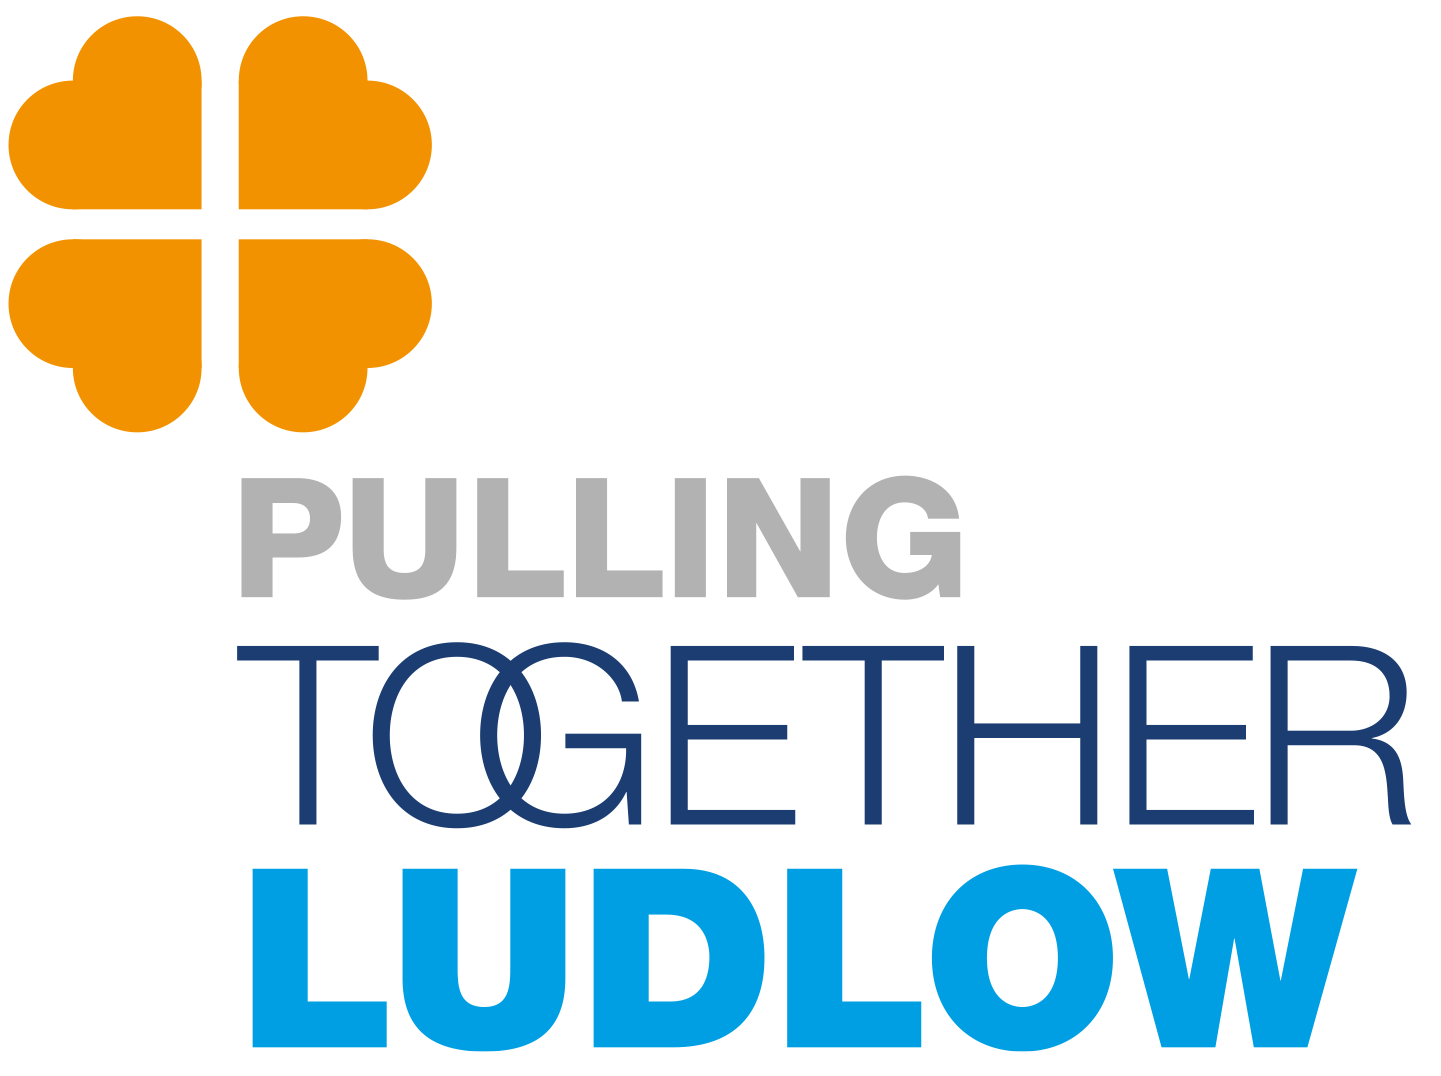 Covid Watch 24: Pulling Together Ludlow is pulling Ludlow together at a time of need